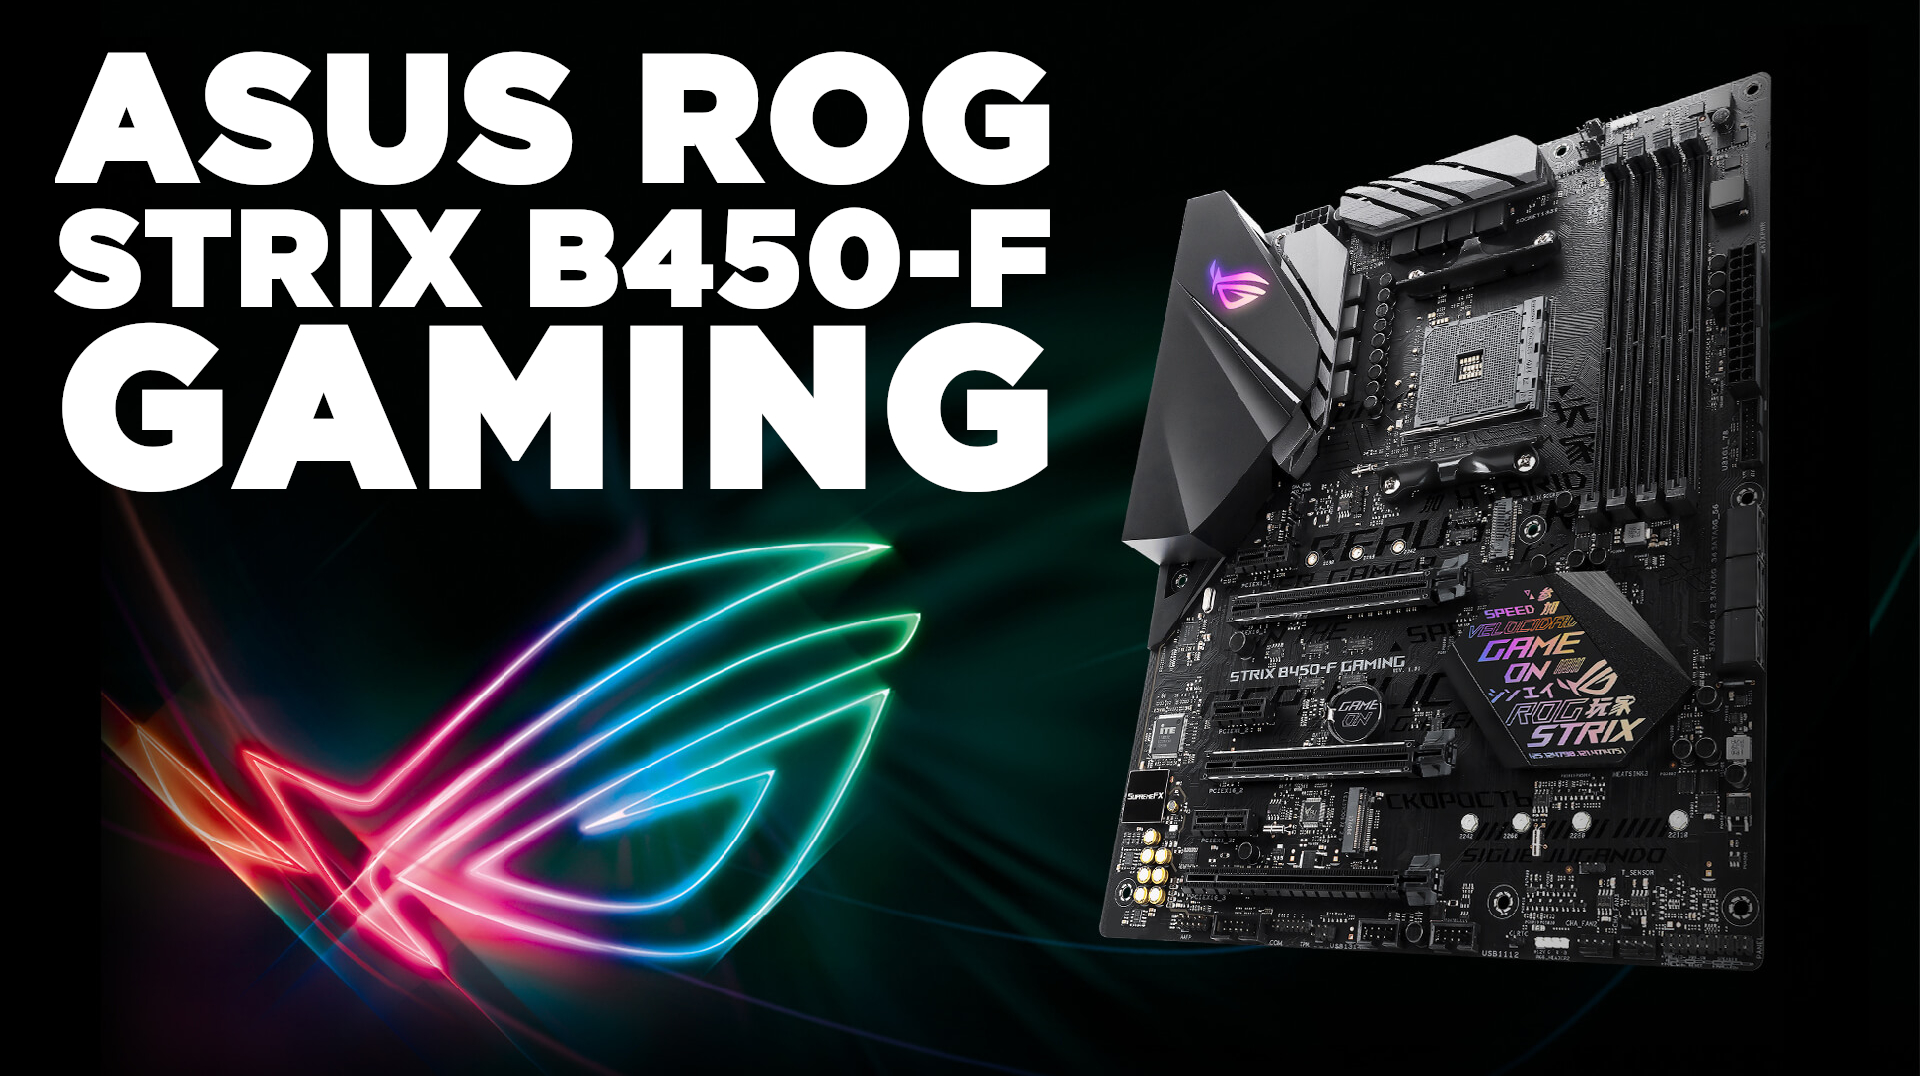 Asus ROG Strix B450-F Gaming incelemesi